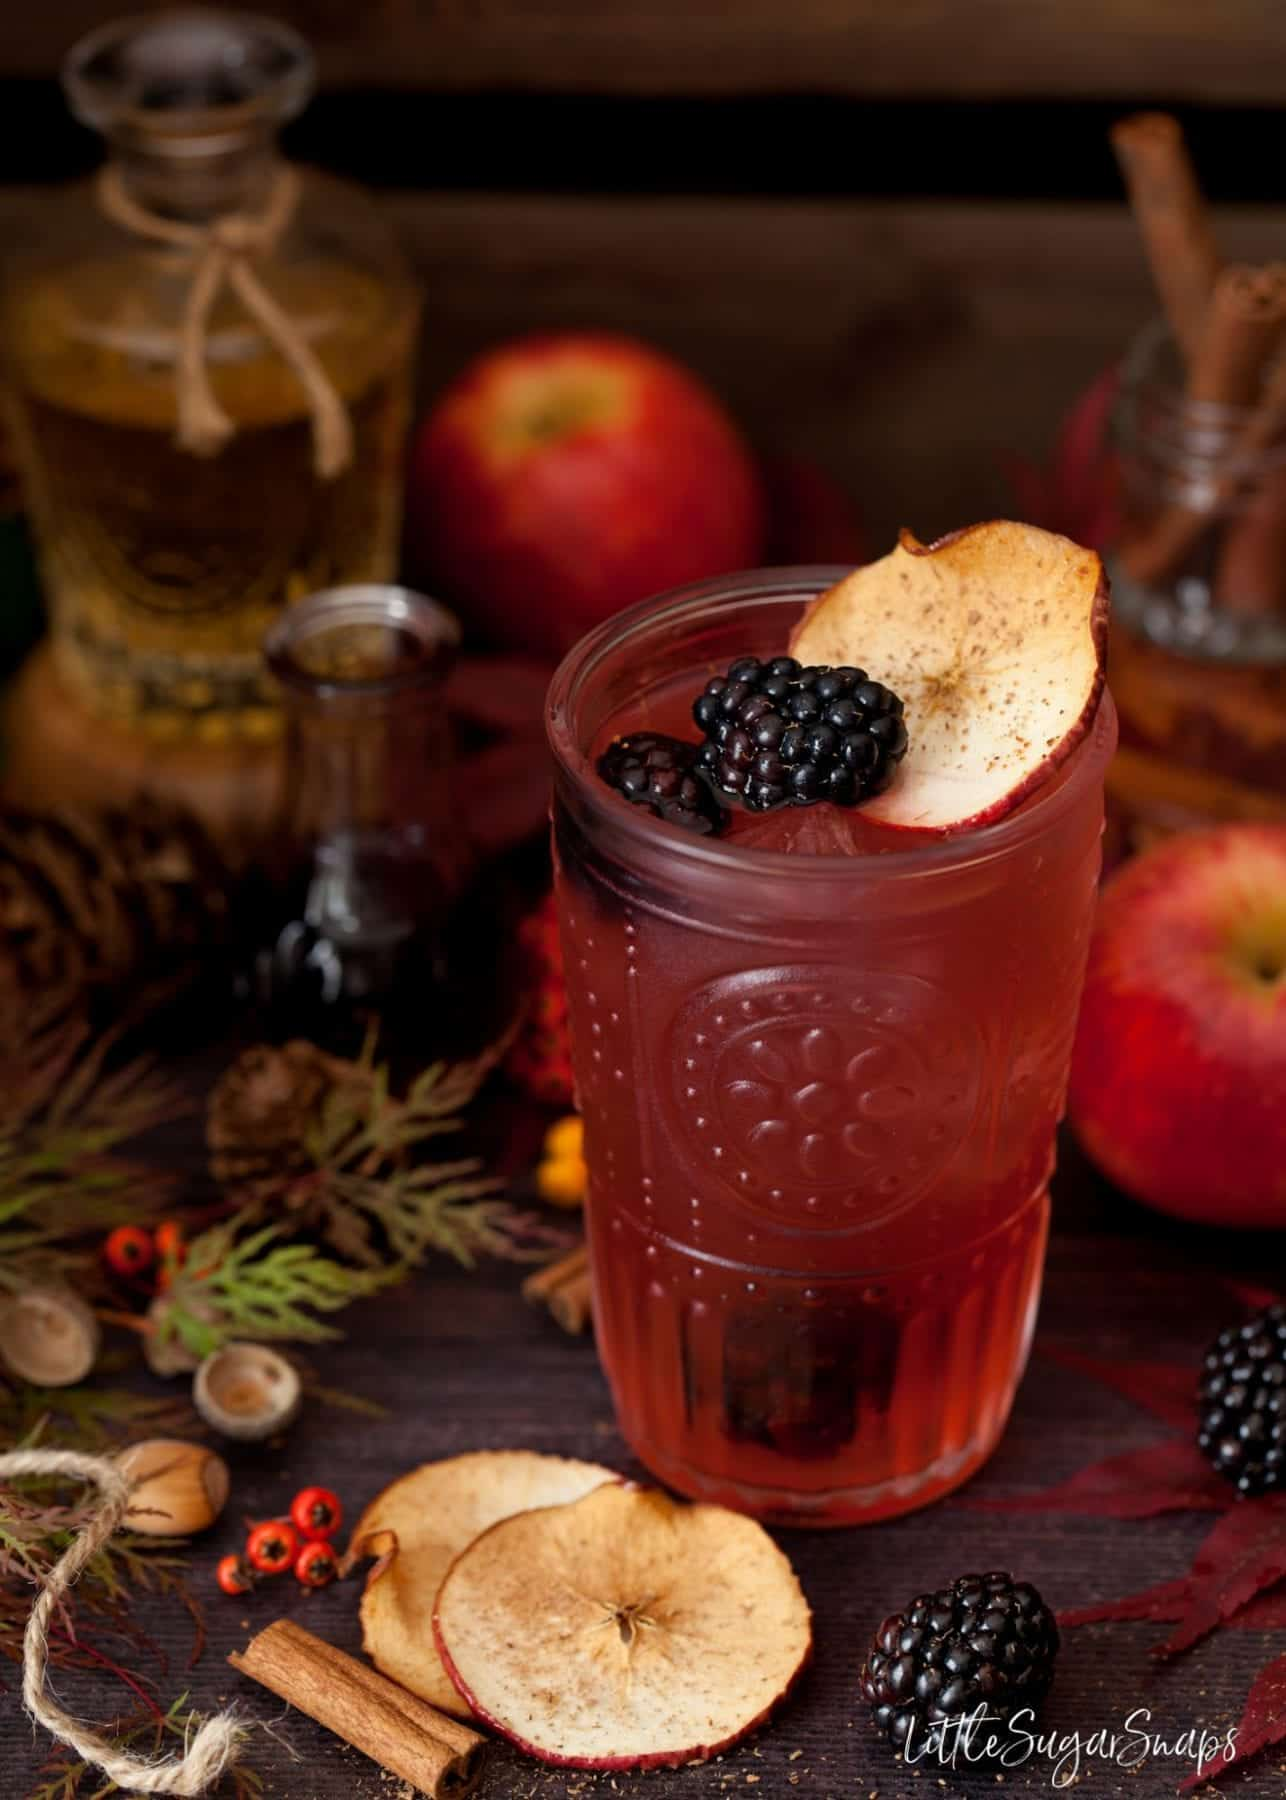 A glass of Blackberry and Apple Gin and tonic garnished with blackberries, apple and cinnamon.